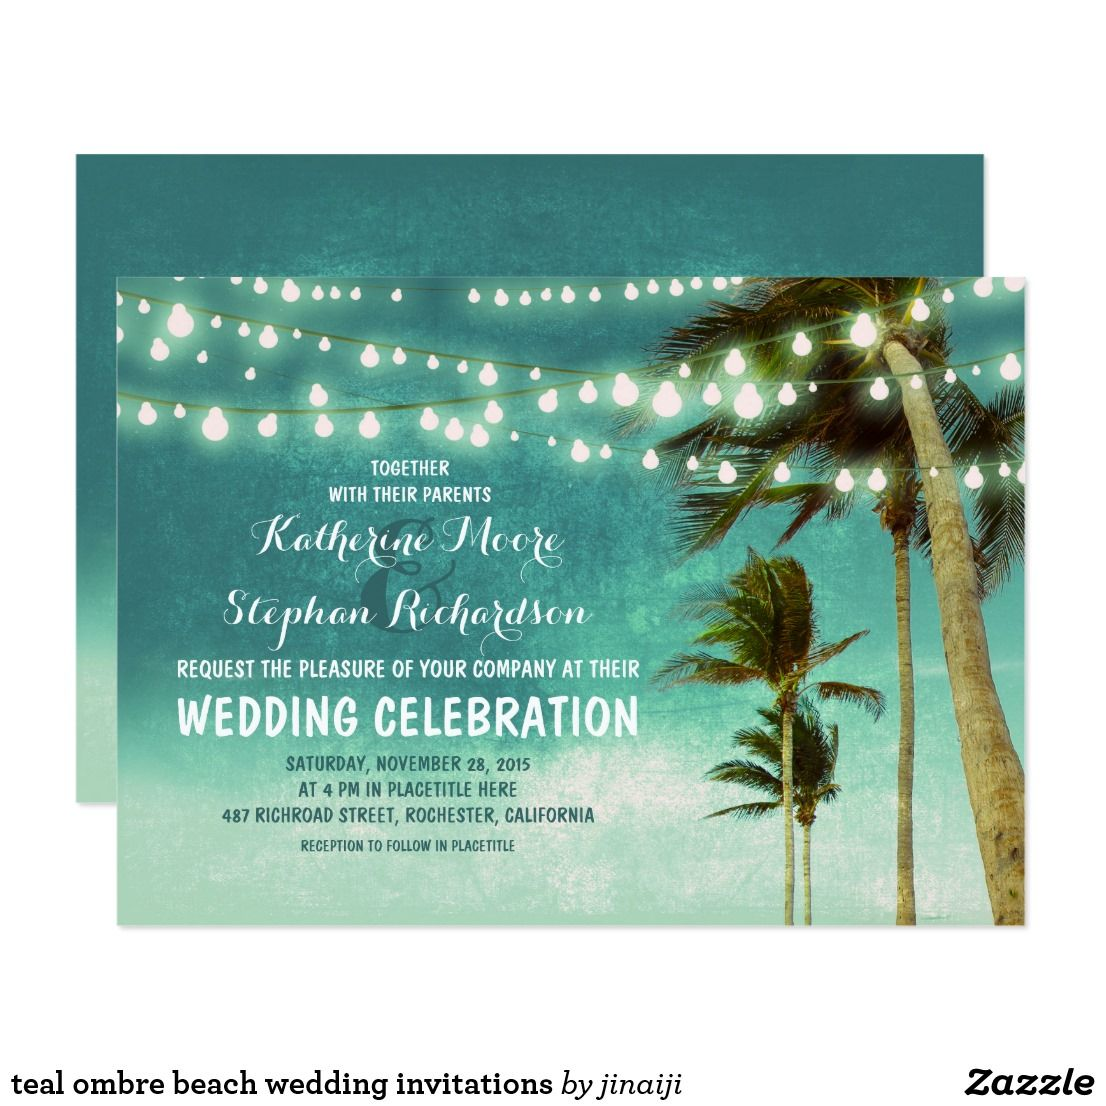 Teal Ombre Beach Wedding Invitations Beach Wedding Invitations